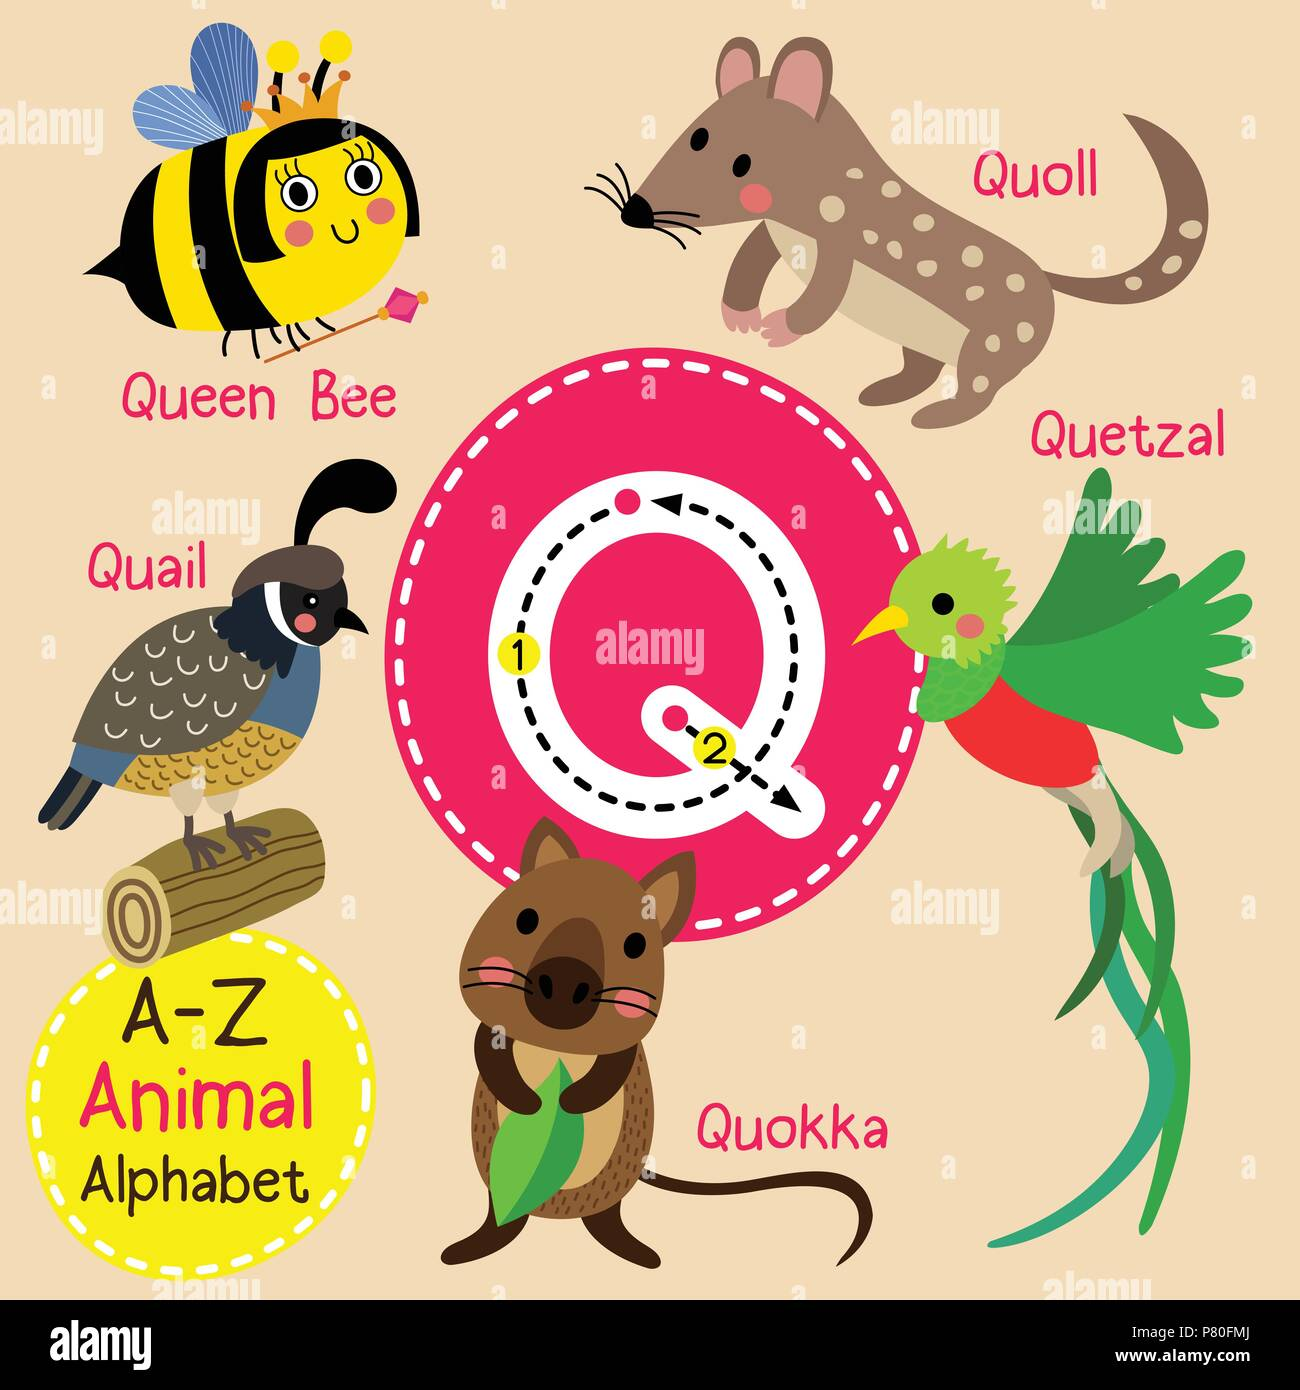 Alphabet Q High Resolution Stock Photography And Images Alamy